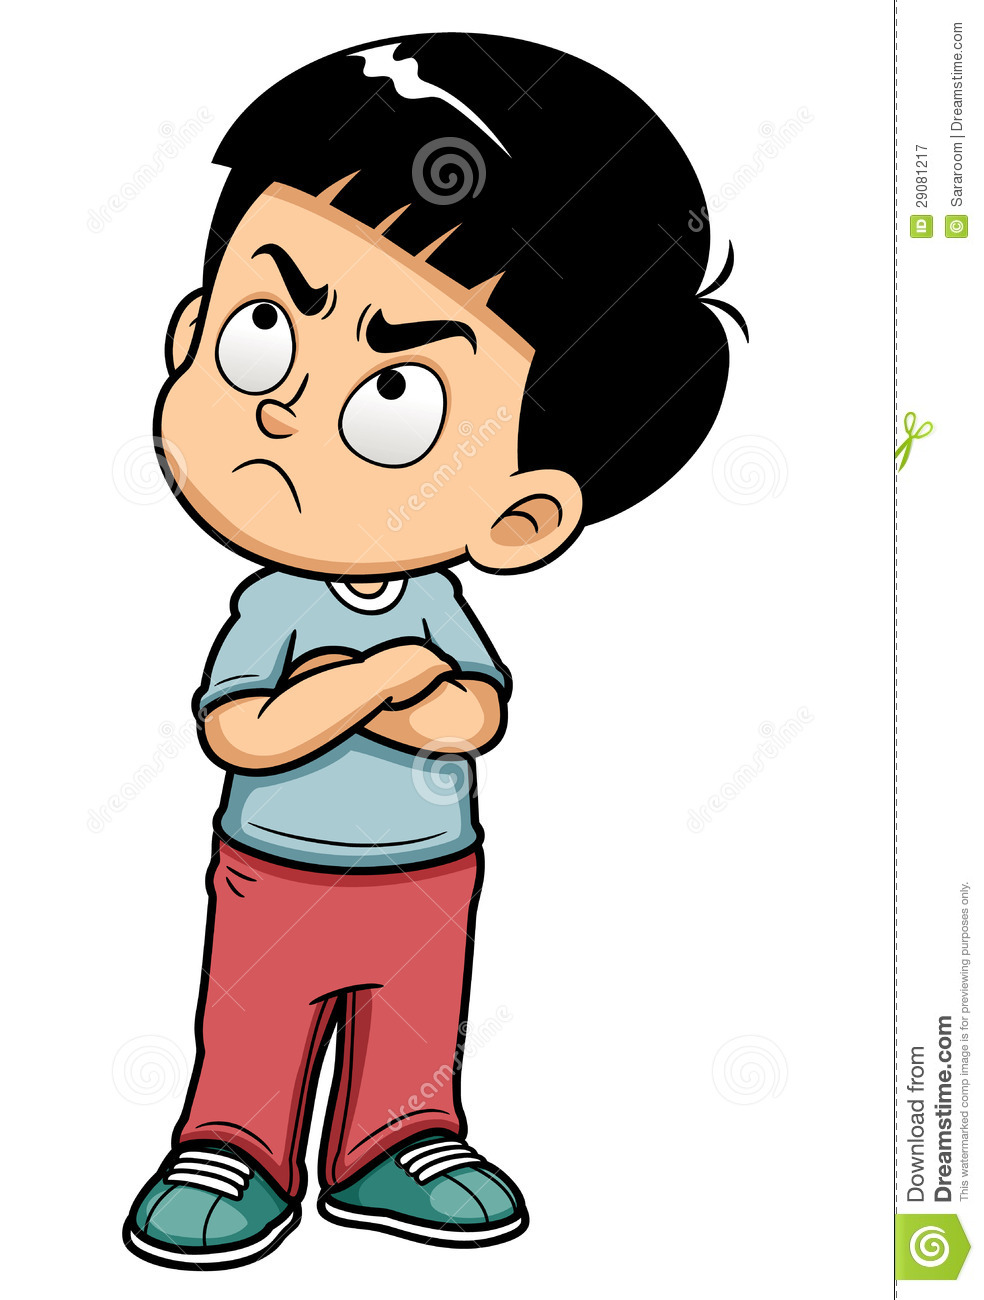 collection of feeling. Mad clipart angry child